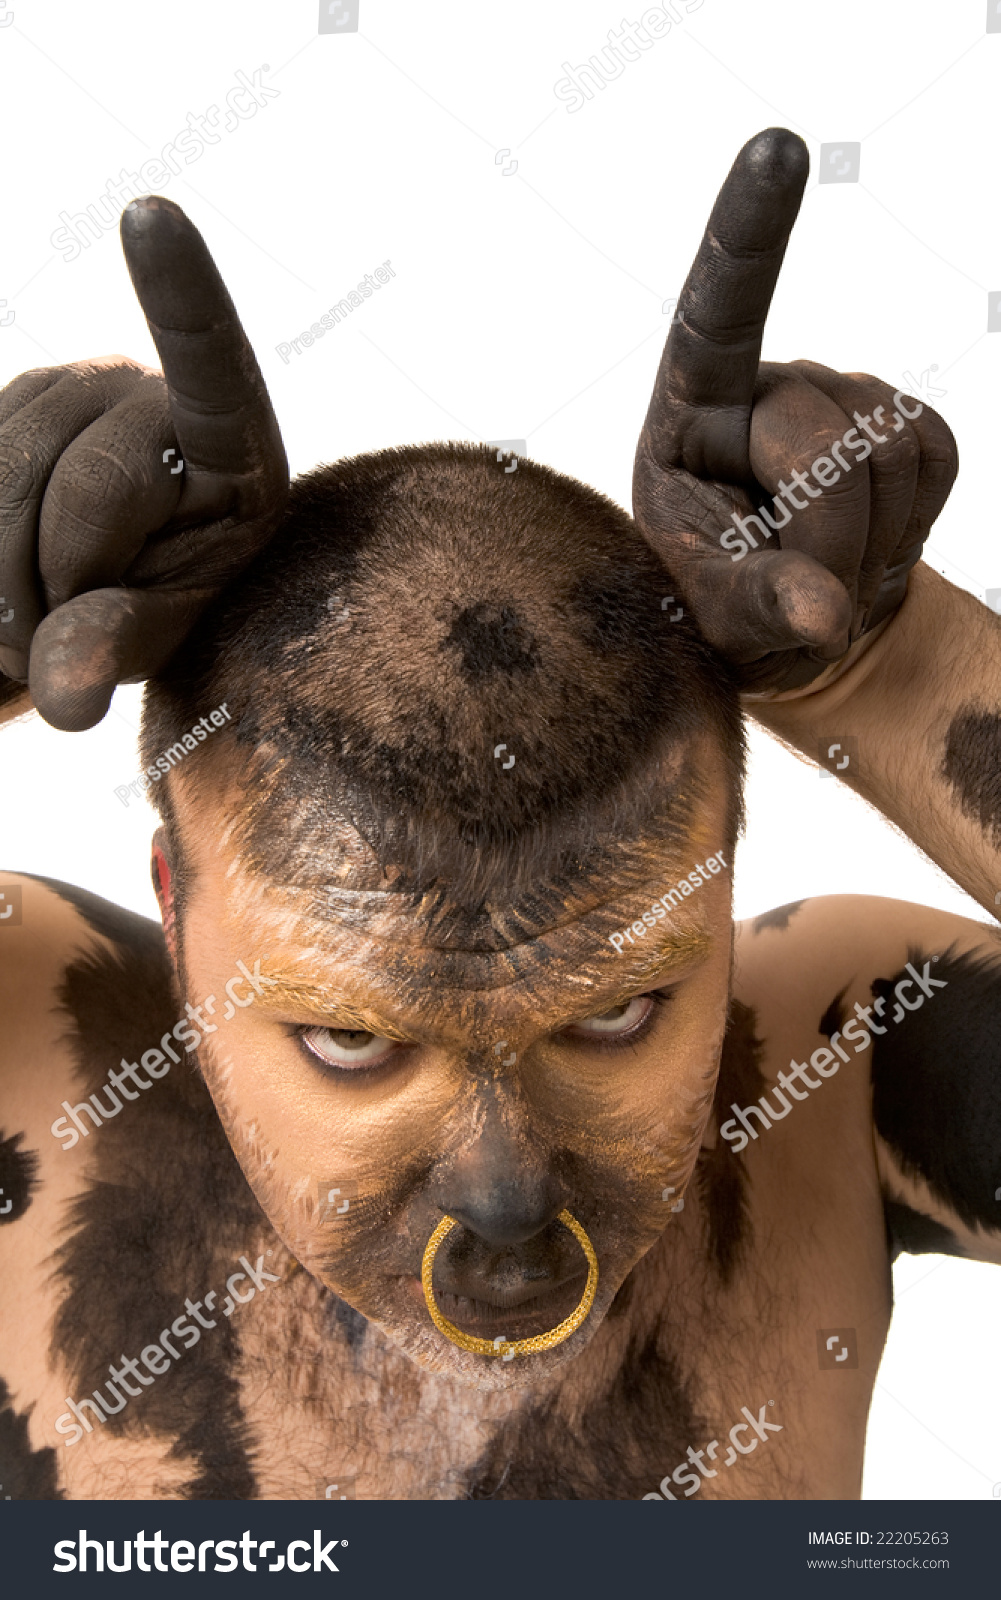 Painted Man Showing Bull Horns Looking Stock Photo 22205263 ...